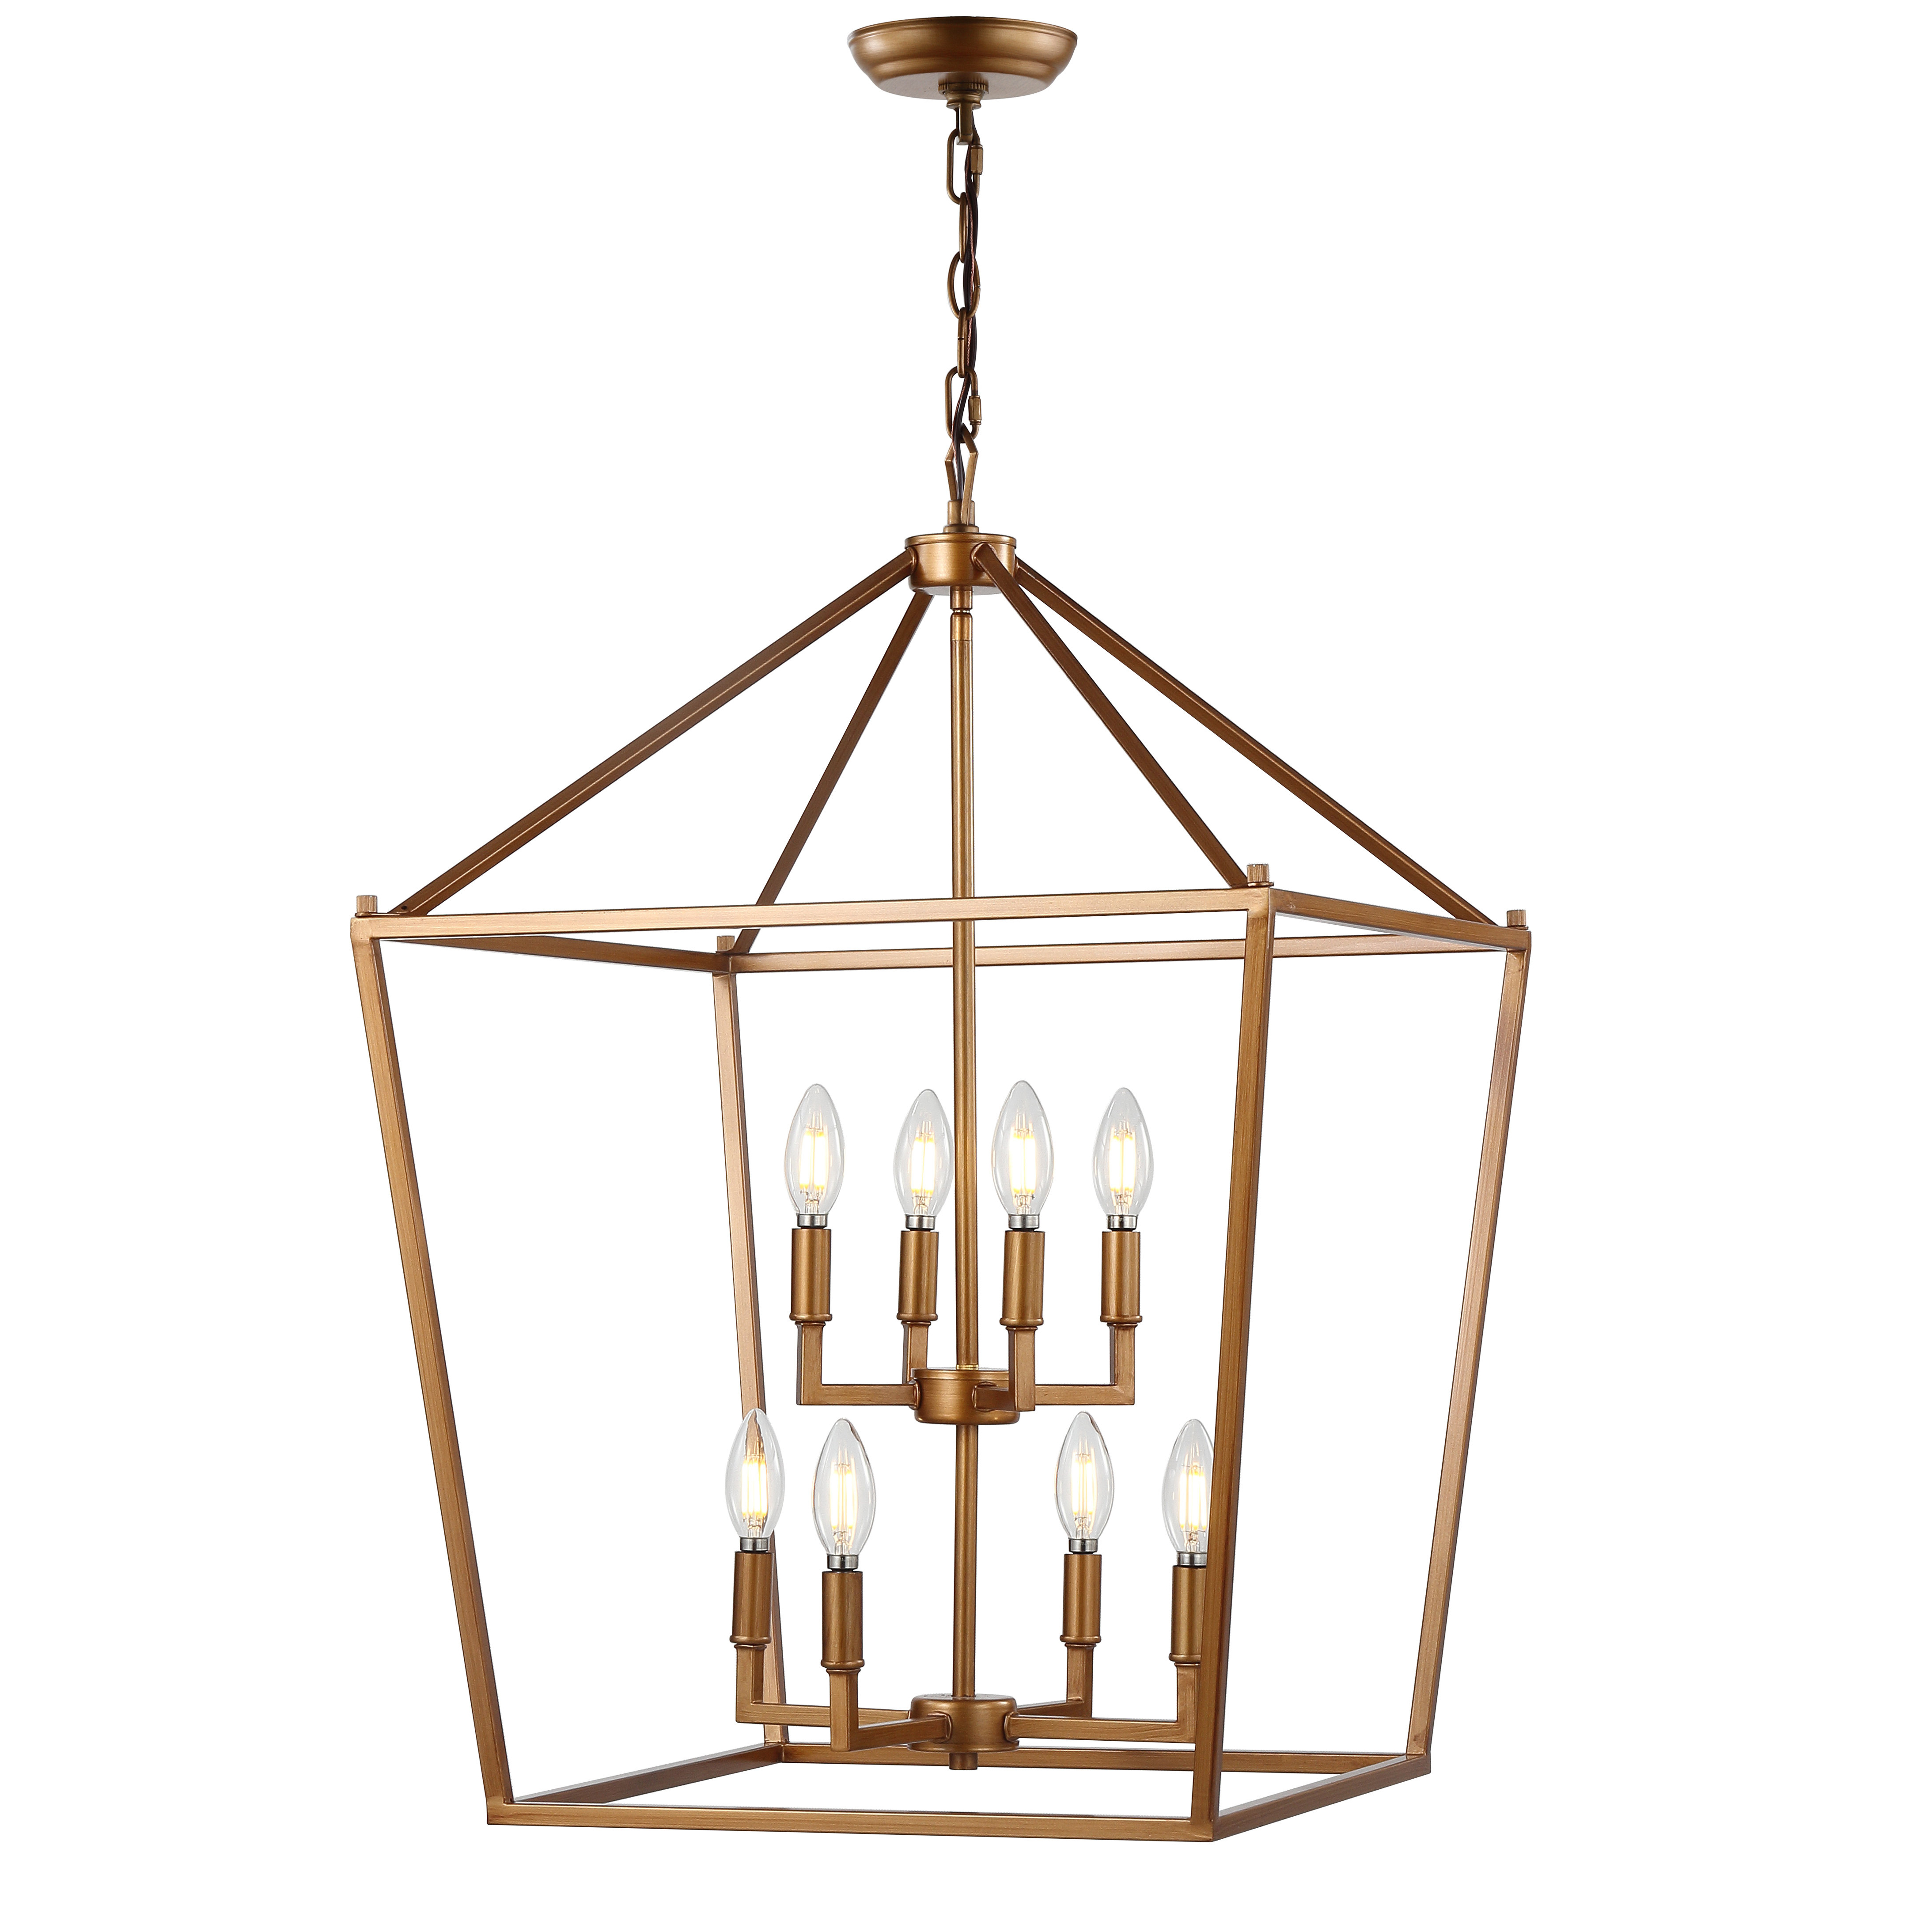 Maggiemae 8 Light Lantern Pendant For Most Up To Date Carmen 8 Light Lantern Tiered Pendants (View 9 of 20)